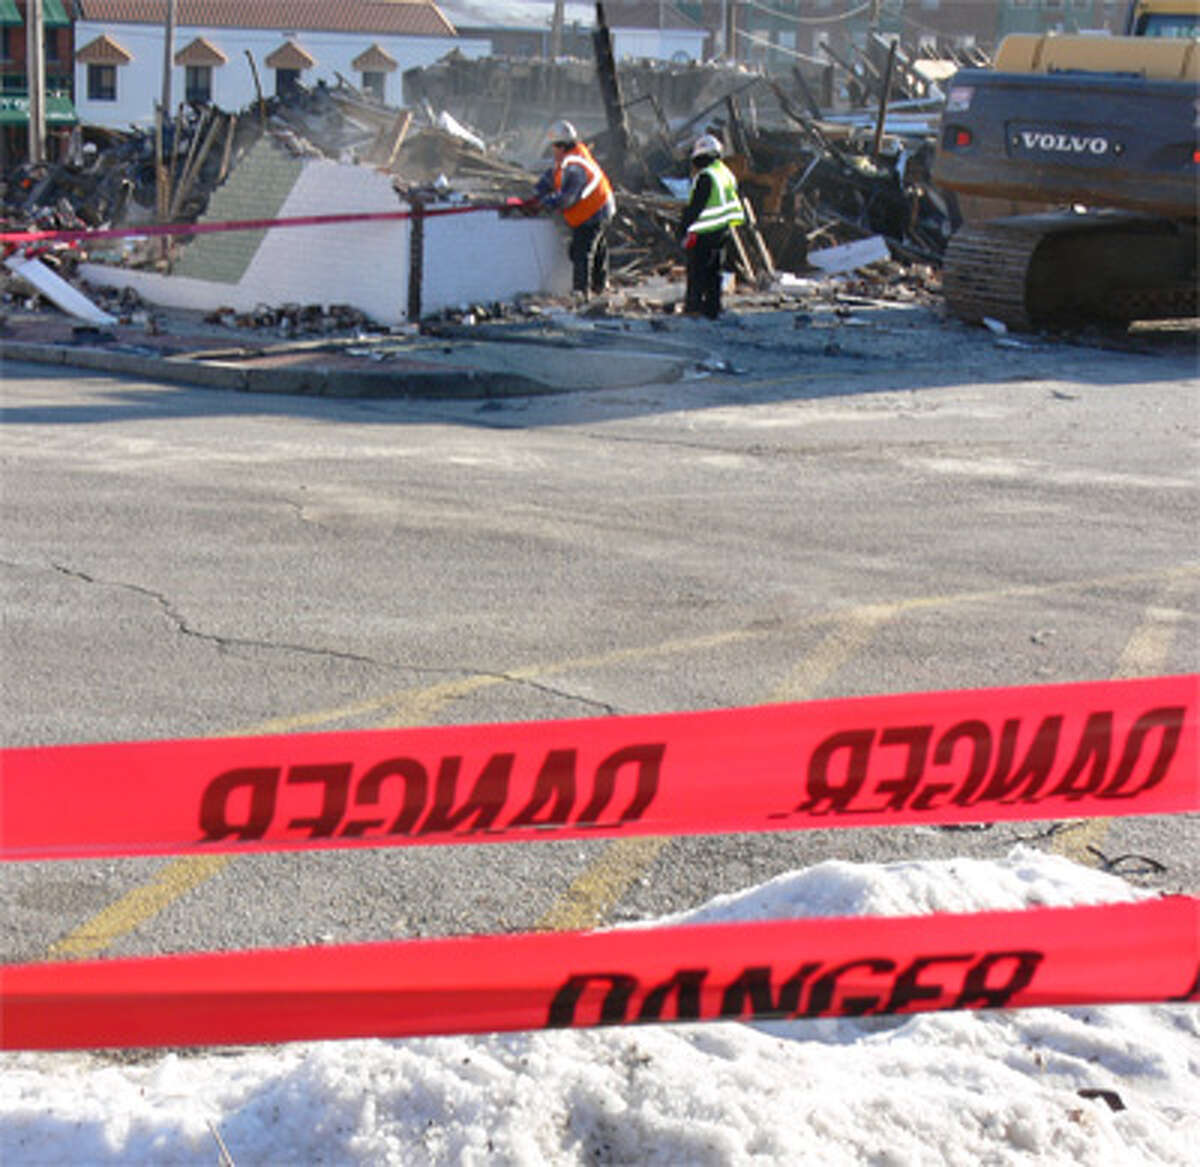 Police tape near the Shelton post office keeps onlookers away from where workers are continuing to take apart remnants of the collapsed building.